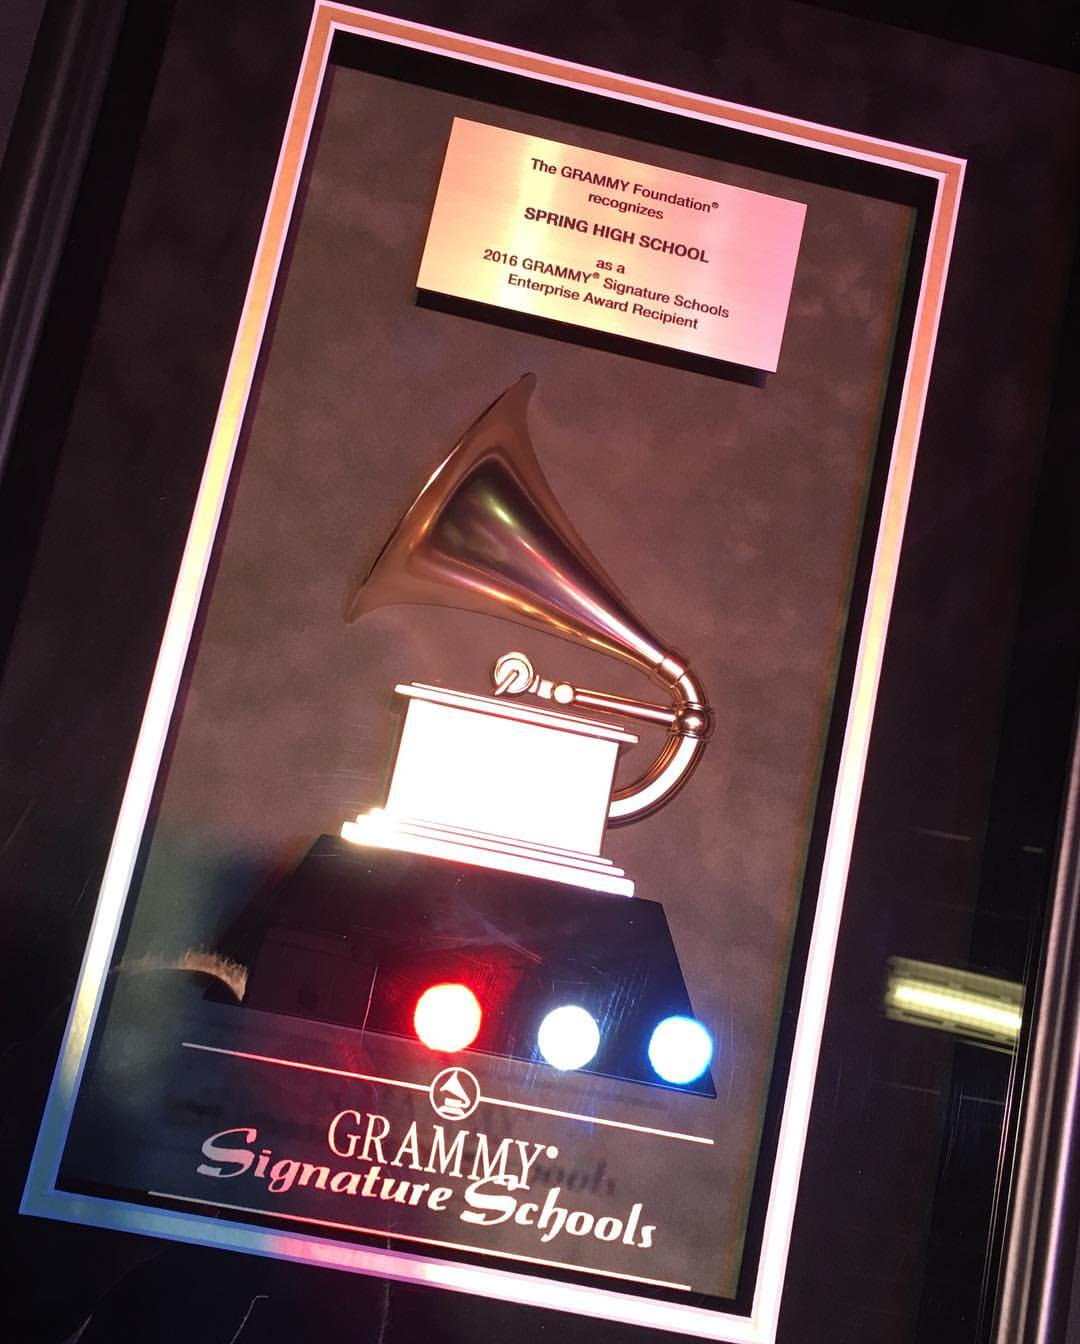 Yep, that's a Grammy Award!